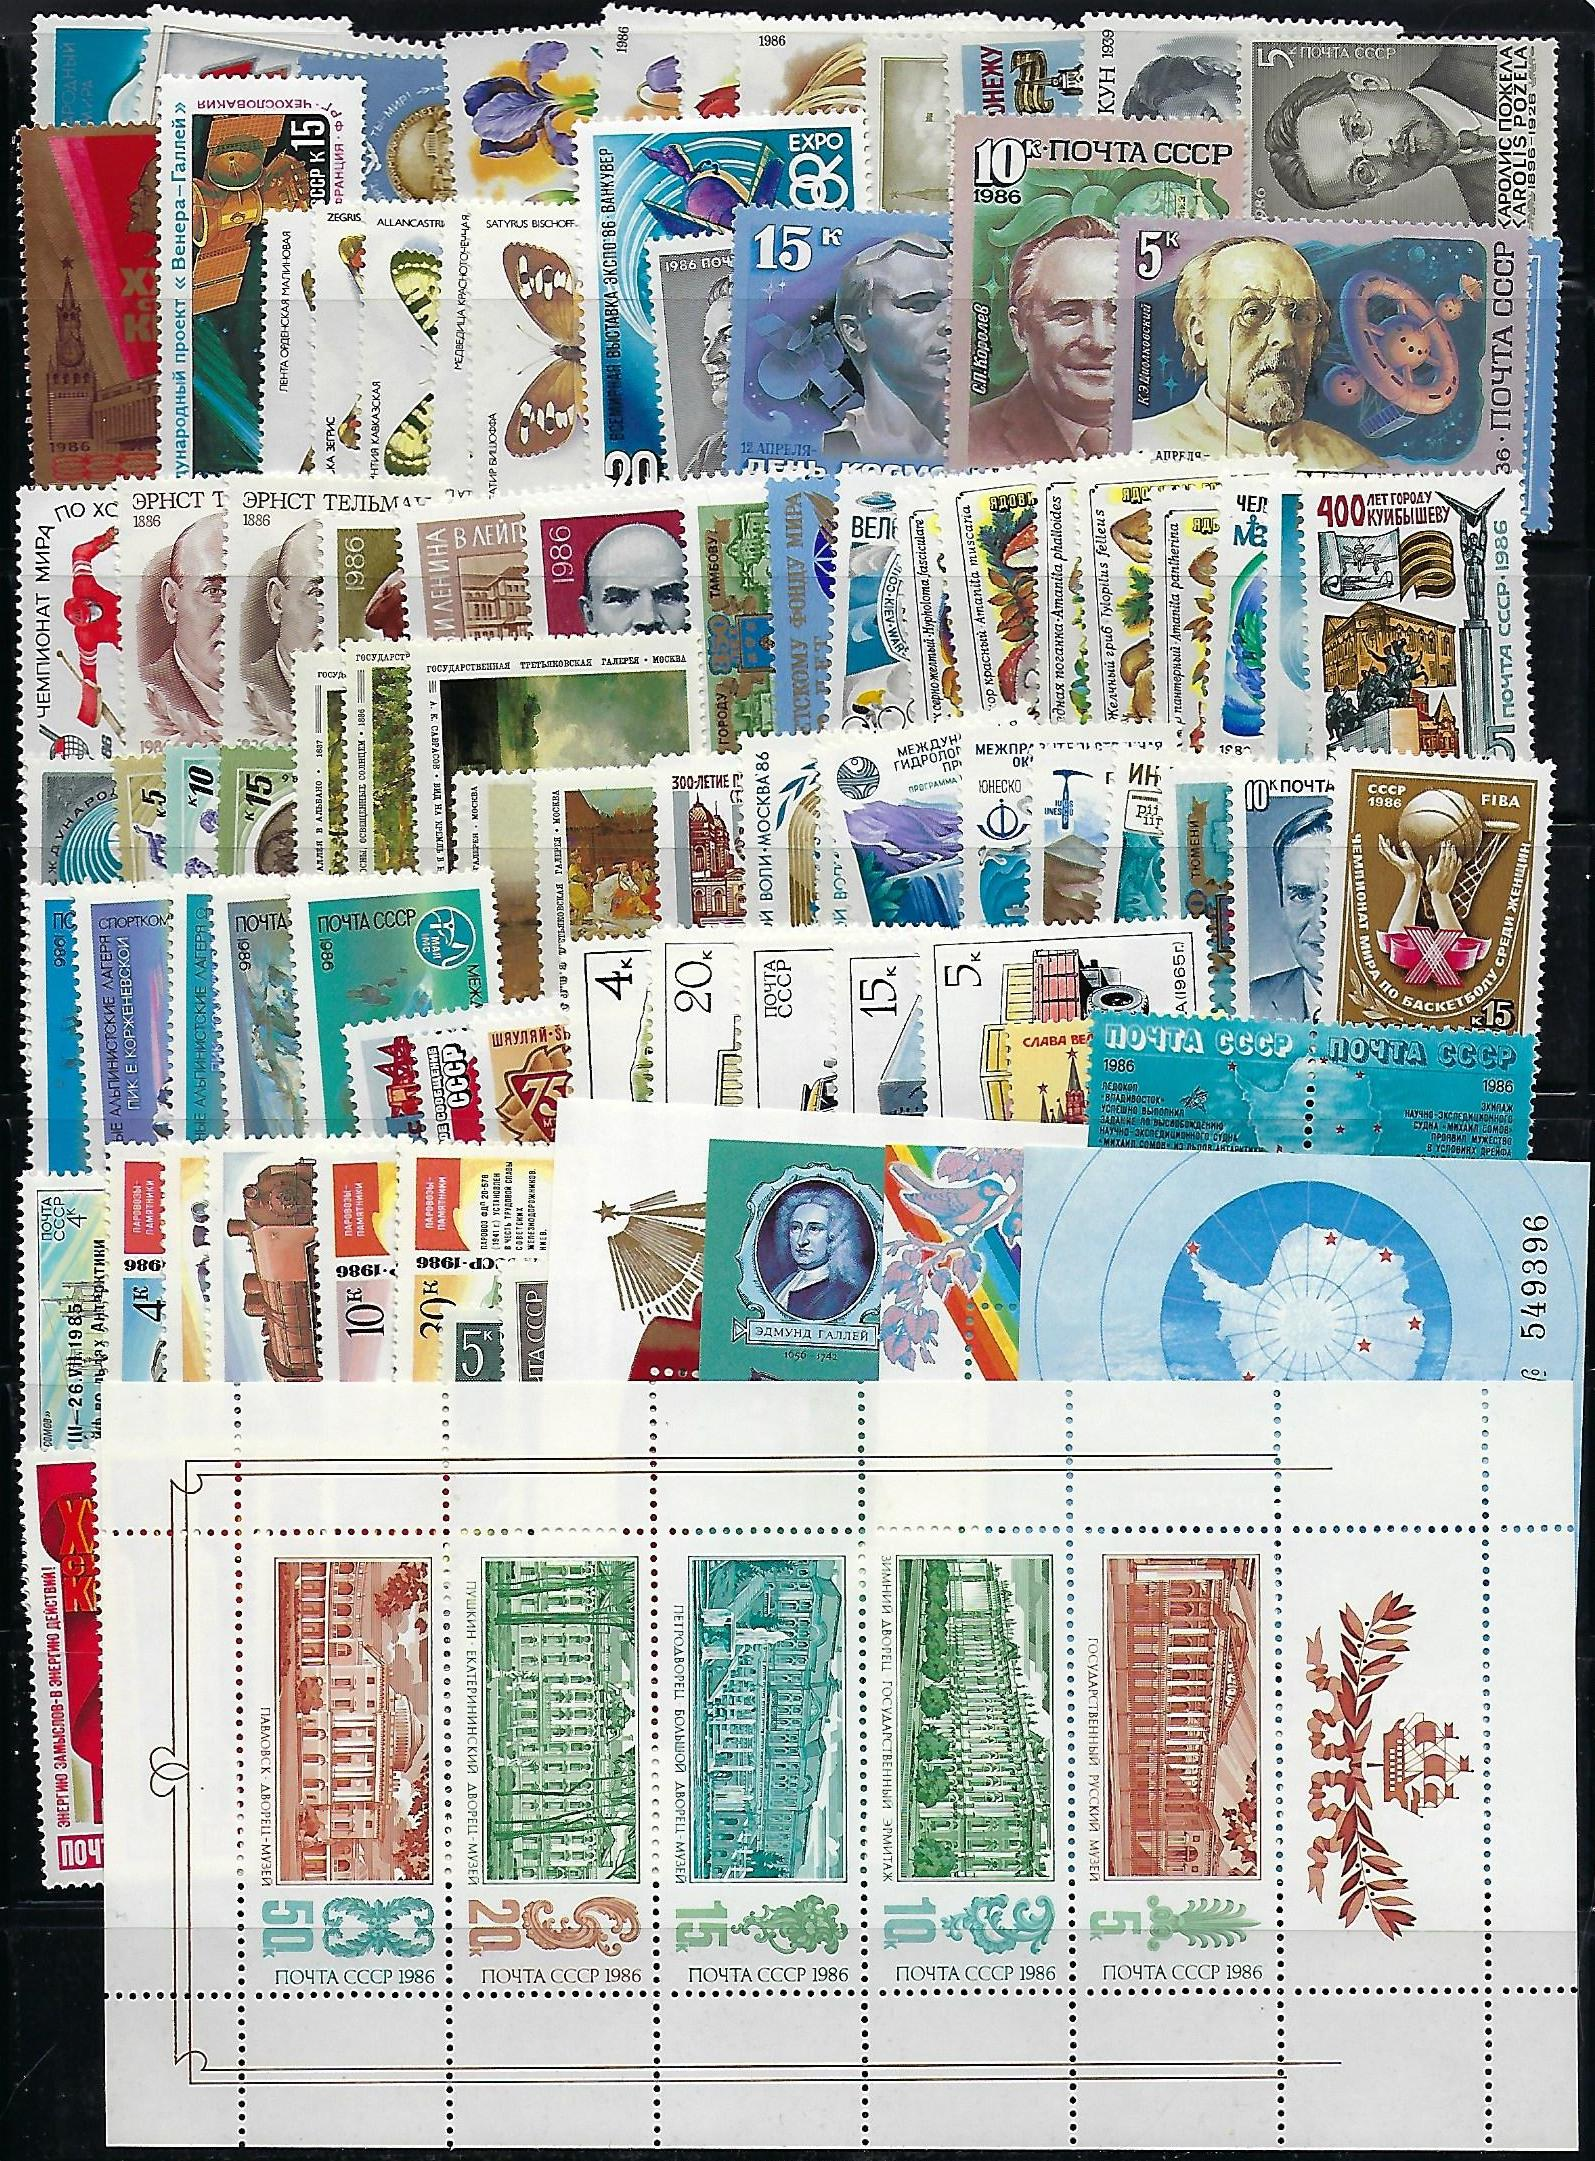 Russia - Year Sets RUSSIA YEAR SETS Scott 5419-5523